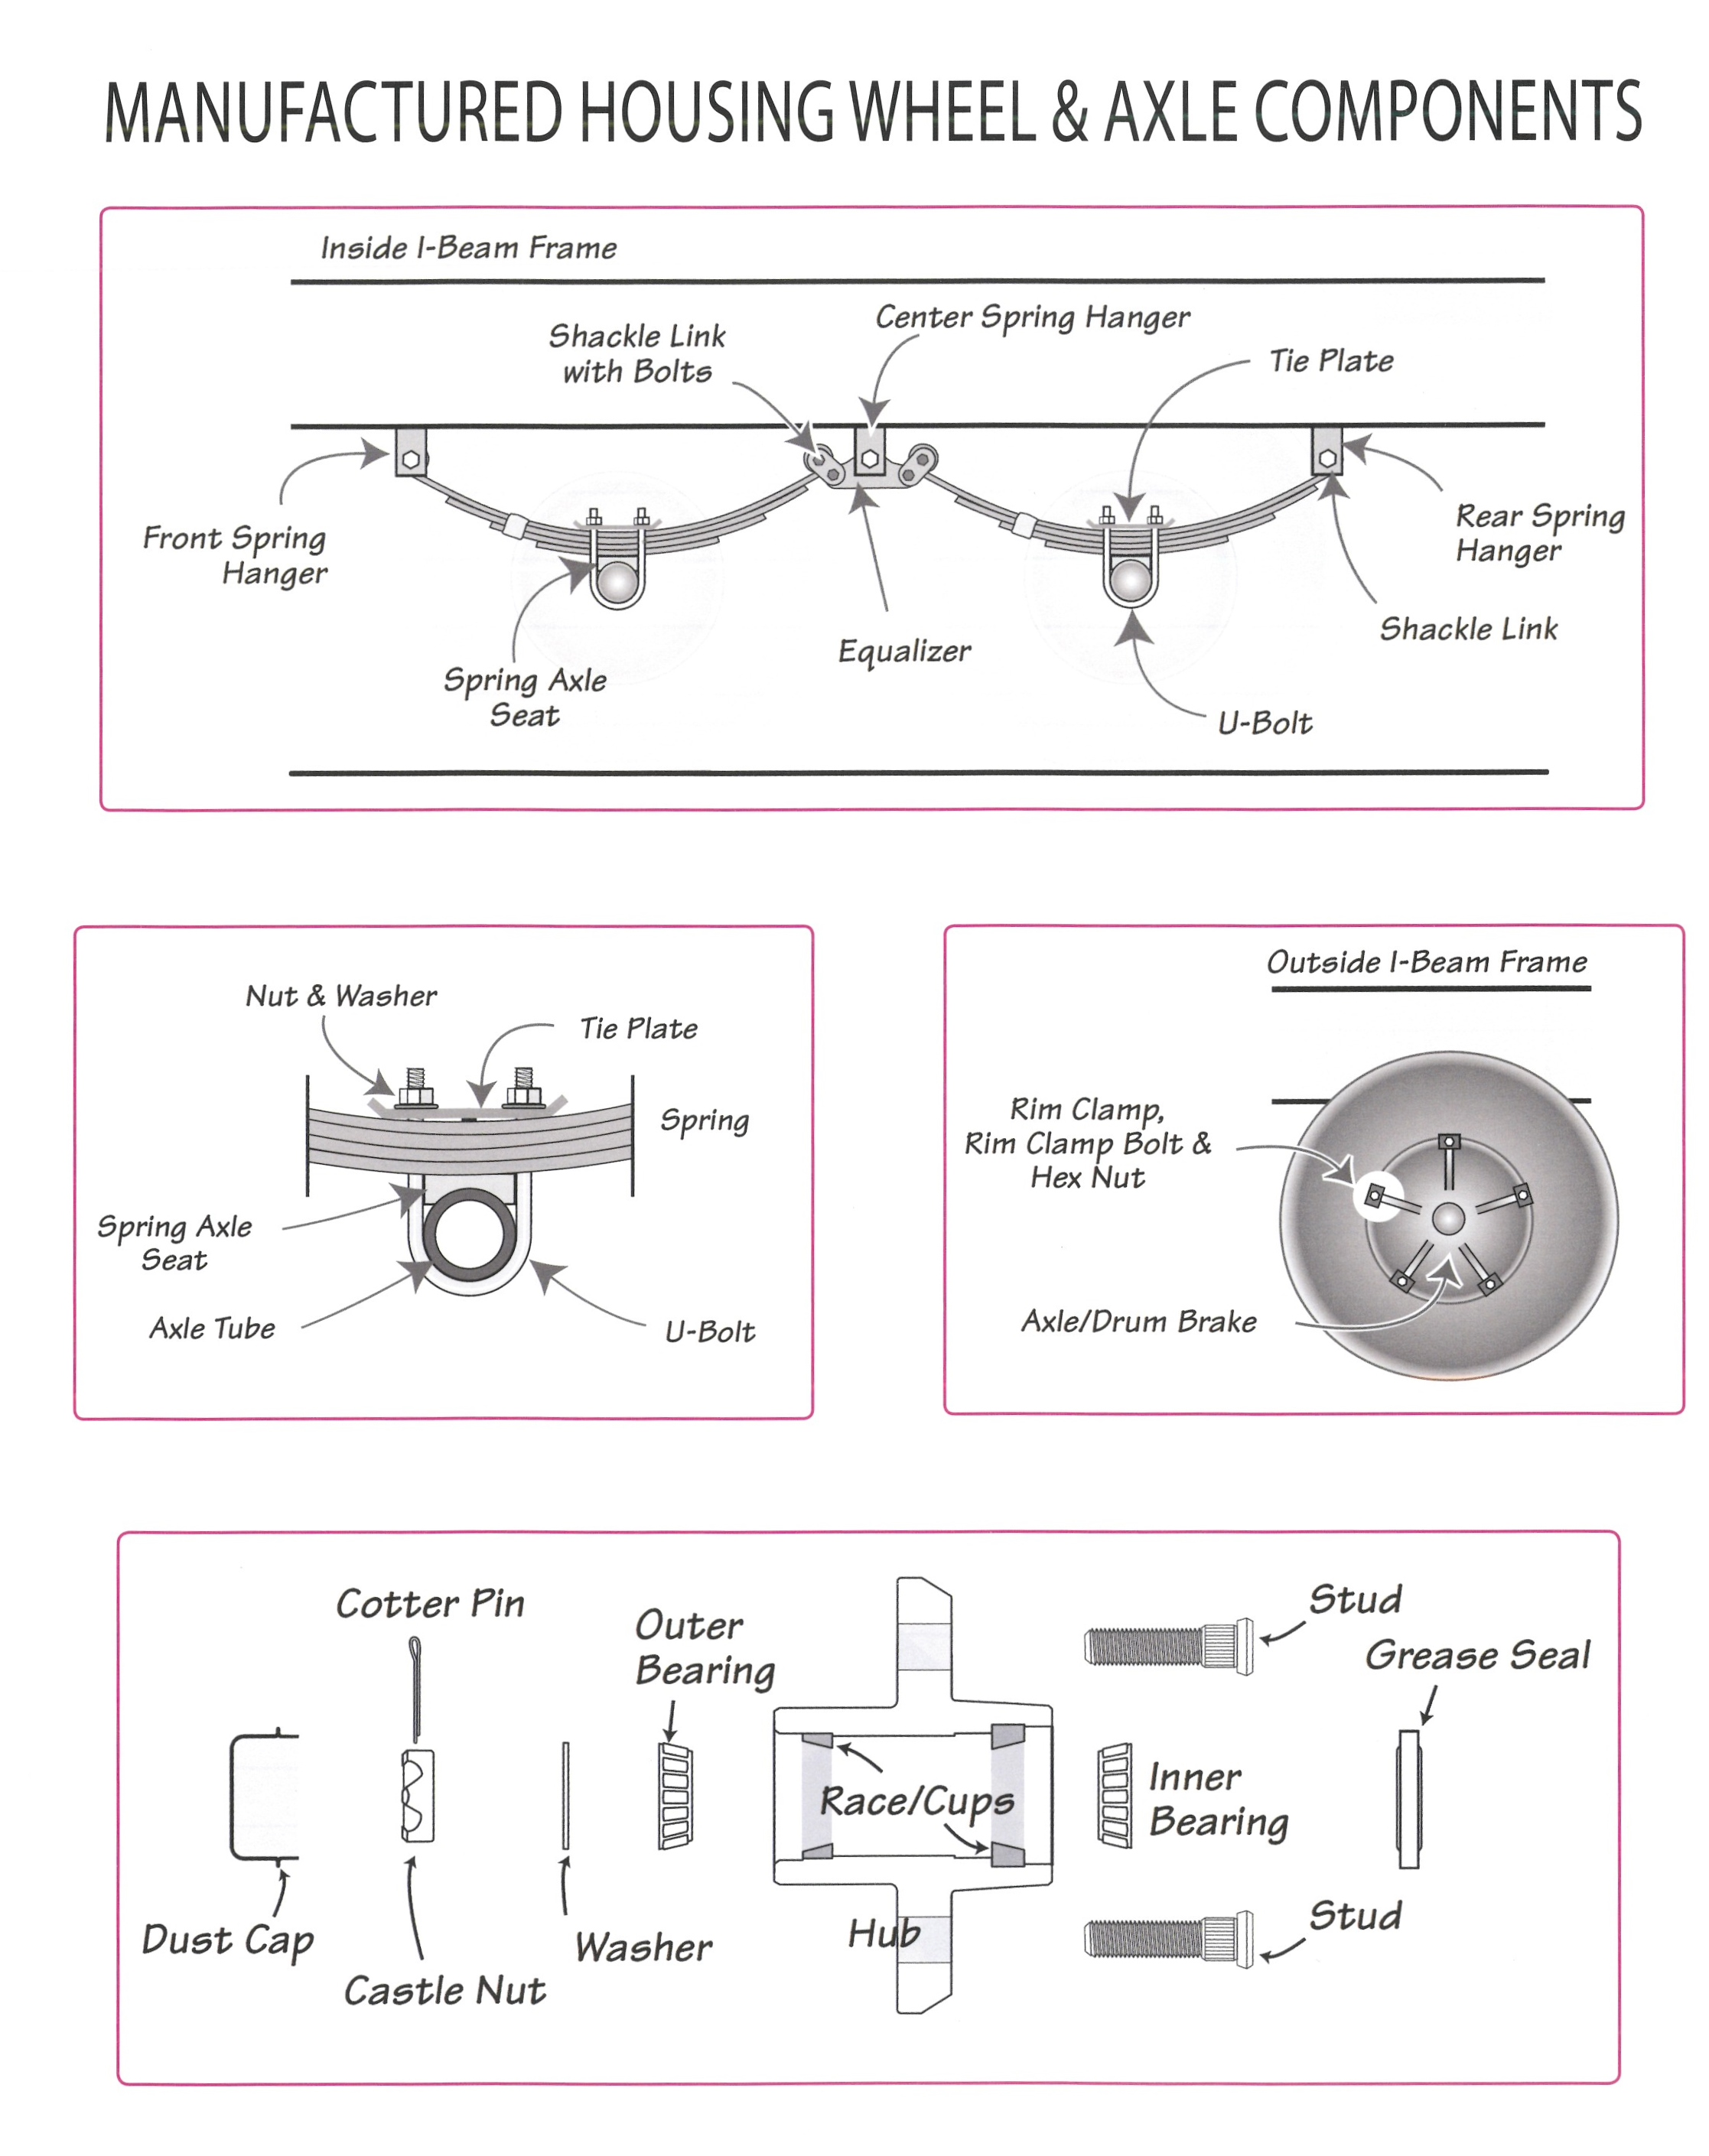 MANUFACTURED HOUSING WHEEL & AXLE COMPONENTS